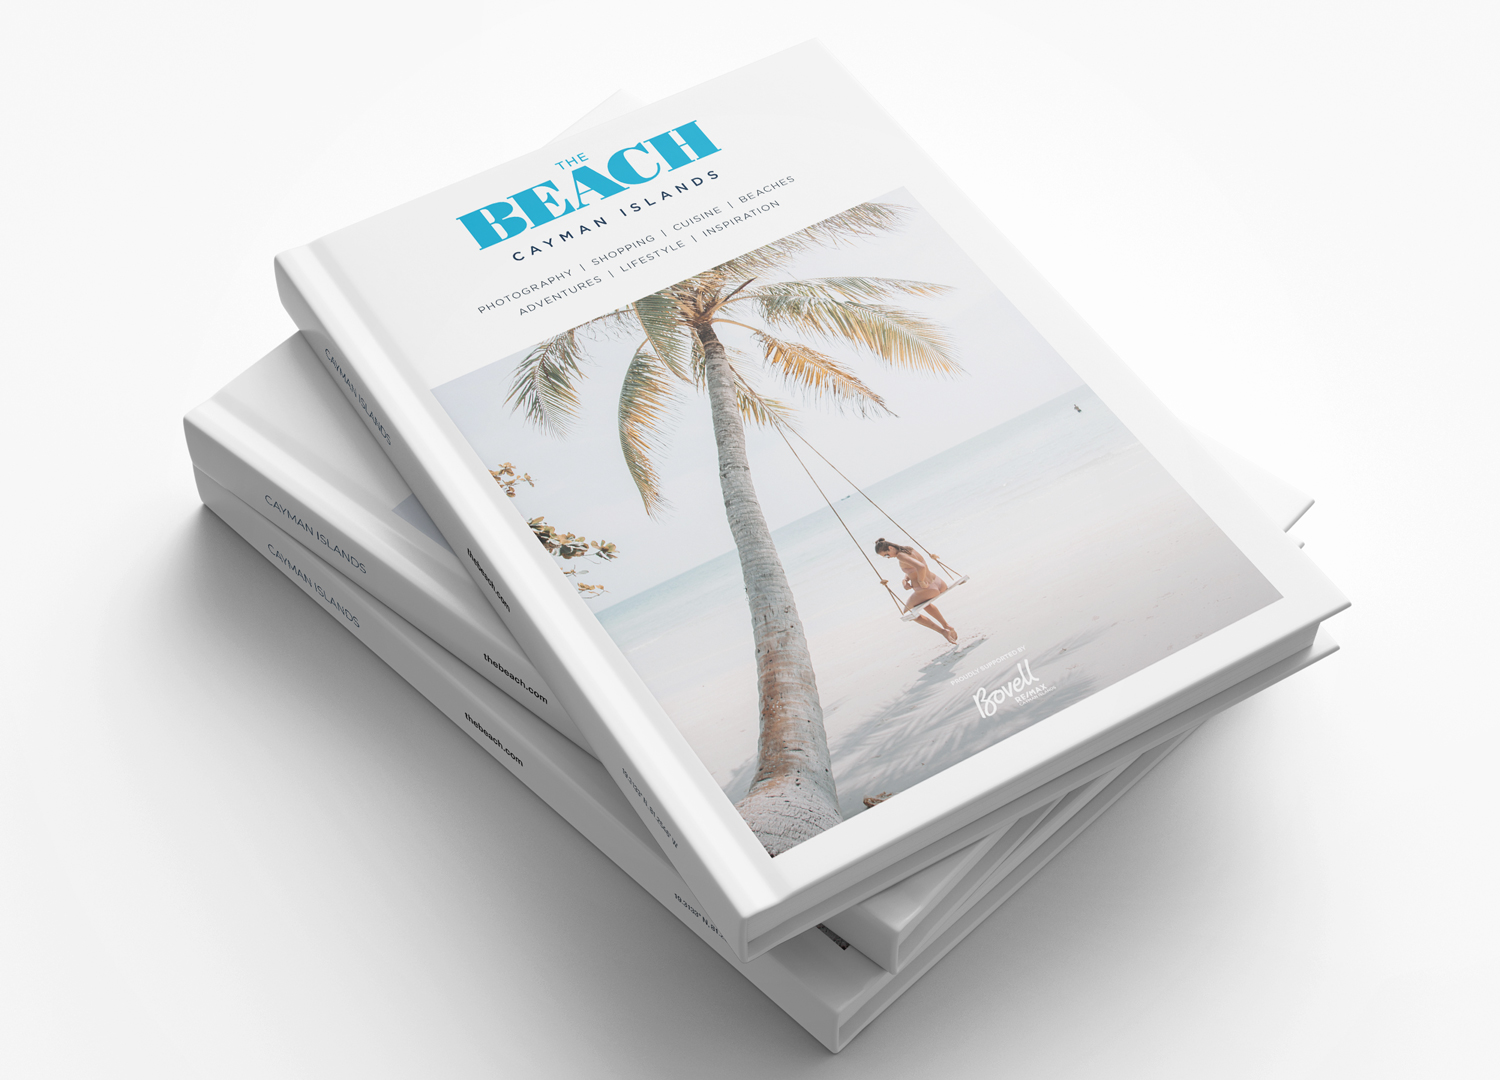 Print Edition - A discerning edit of experiences, places to explore, chill, and watch the sun set over the Caribbean Sea.